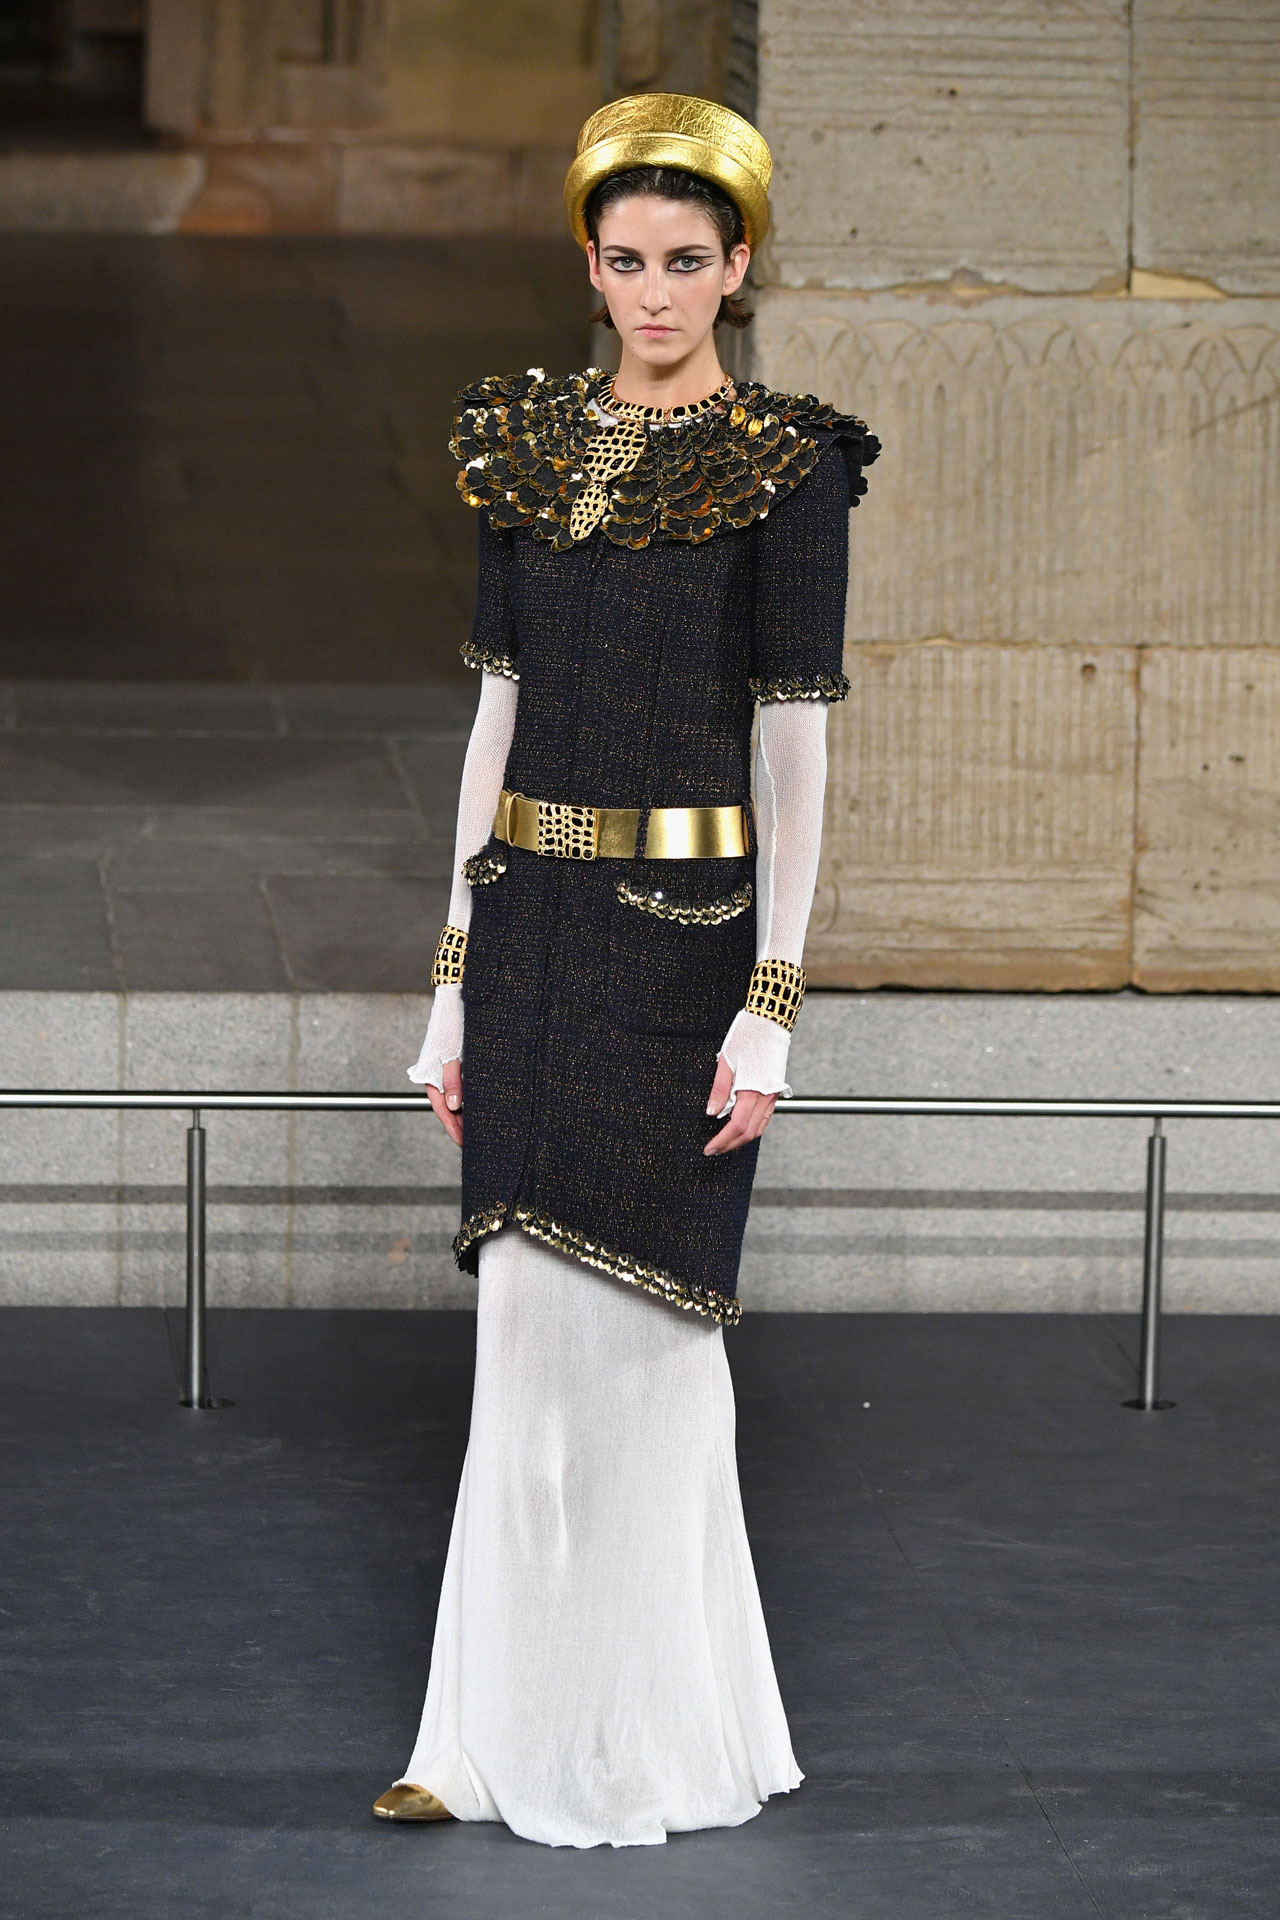 7014bb063 NEW YORK, NEW YORK - DECEMBER 04: A model walks the runway at Chanel Metiers  D'Art 2018/19 Show at The Metropolitan Museum of Art on December 04, ...